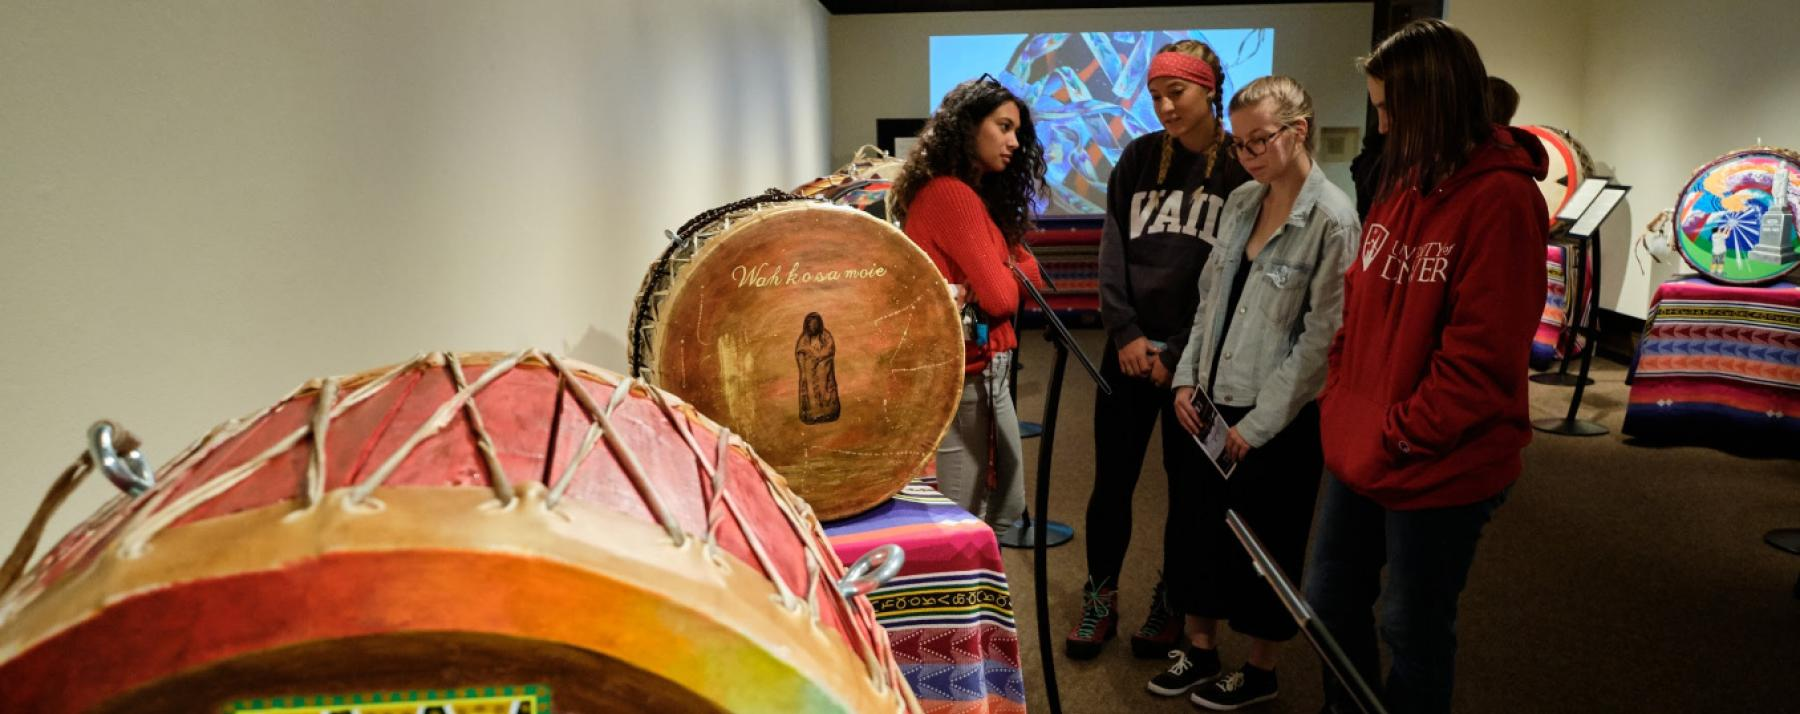 Indigenous arts events at the university of denver museum of art